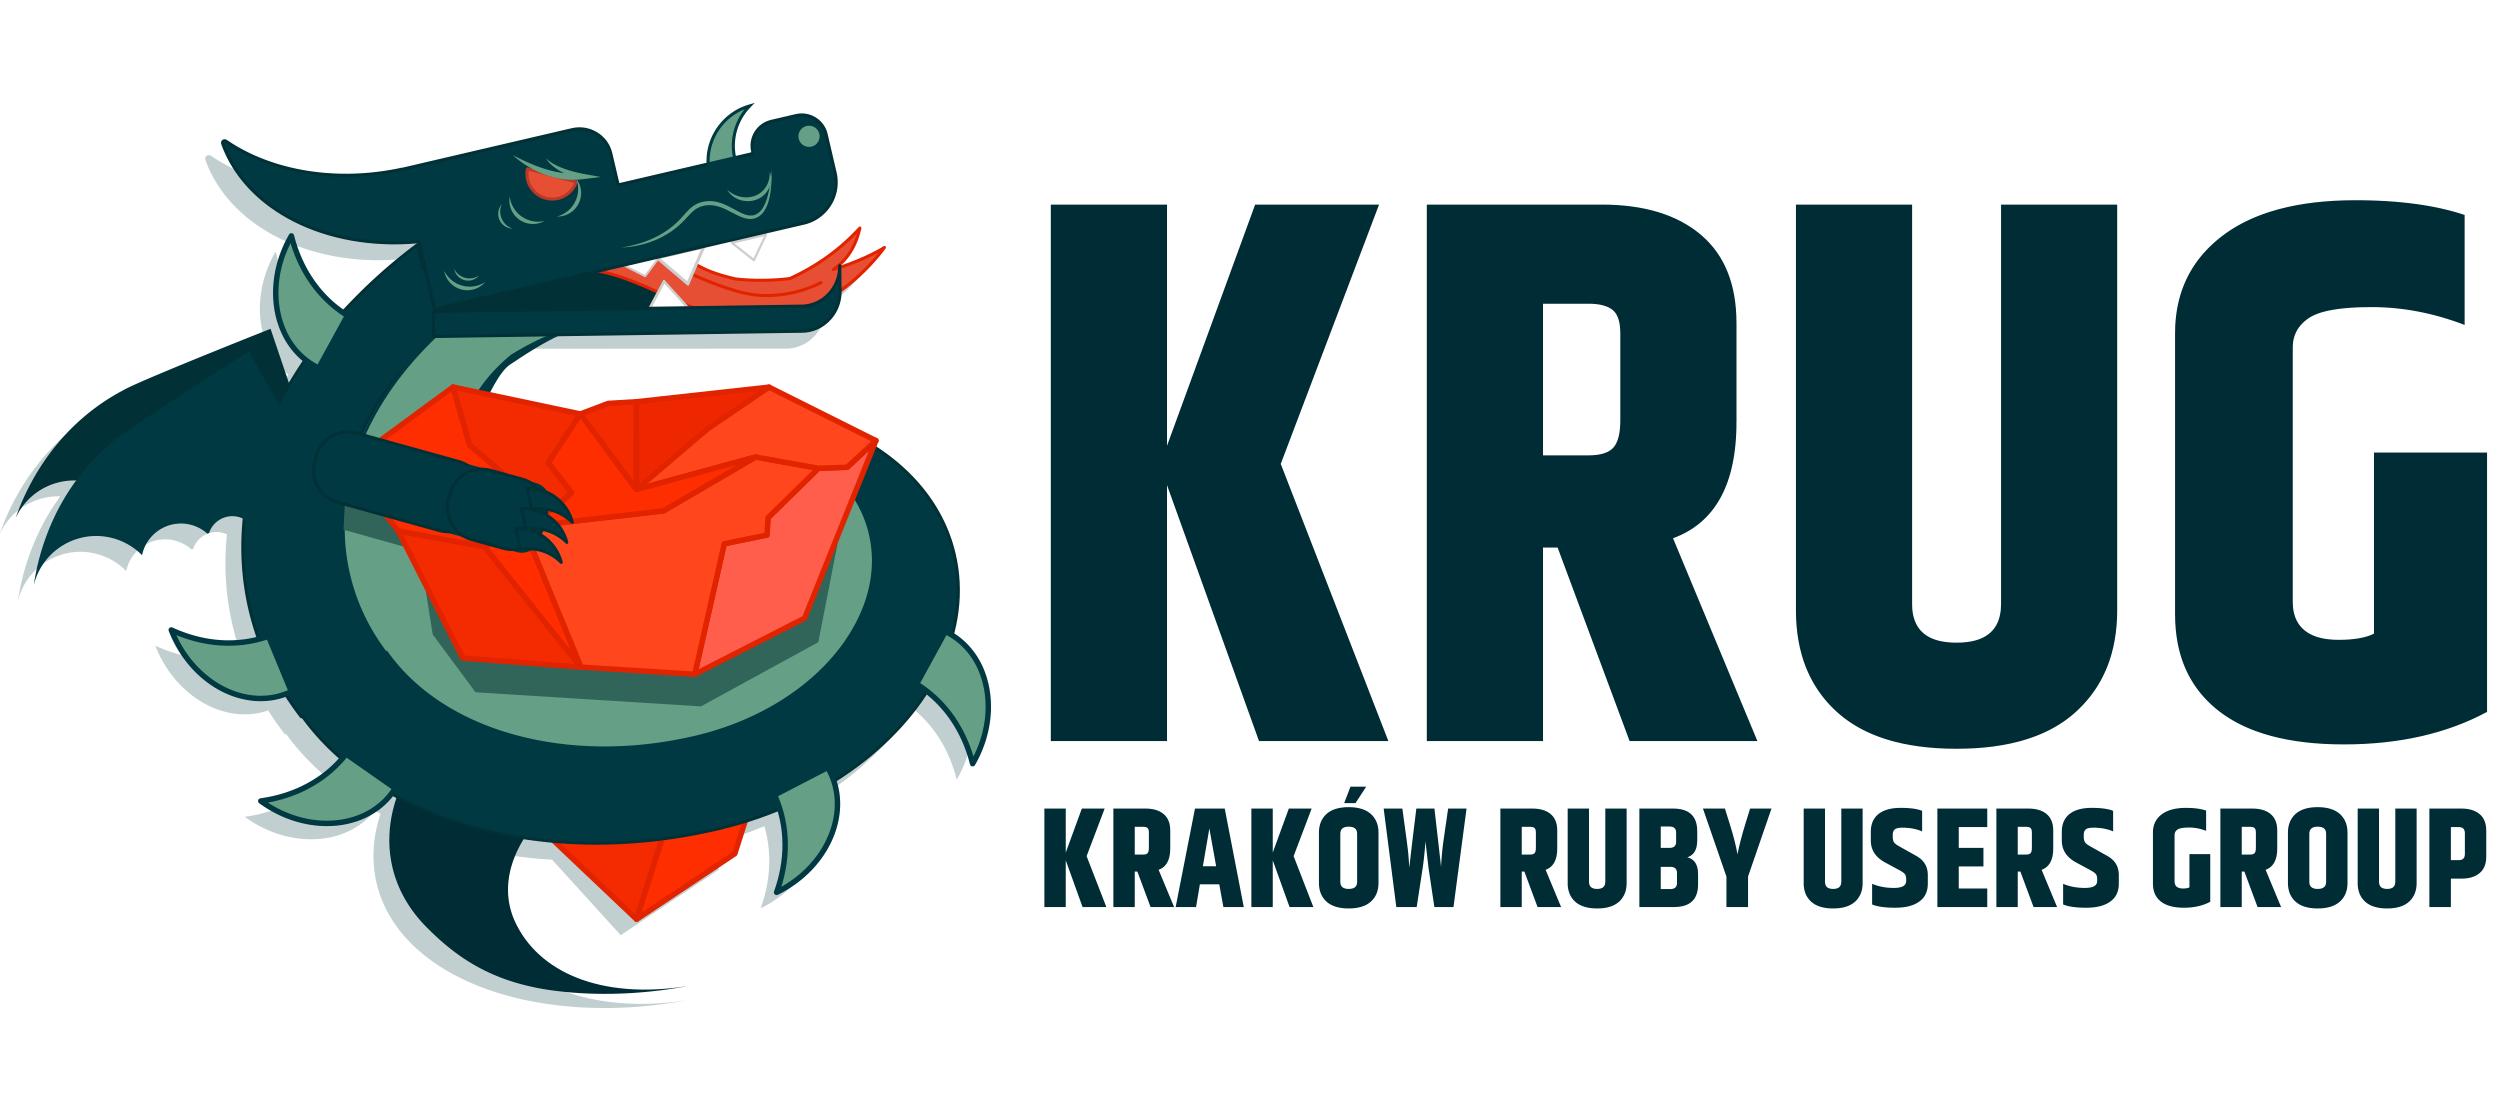 Krakow Ruby User Group logo